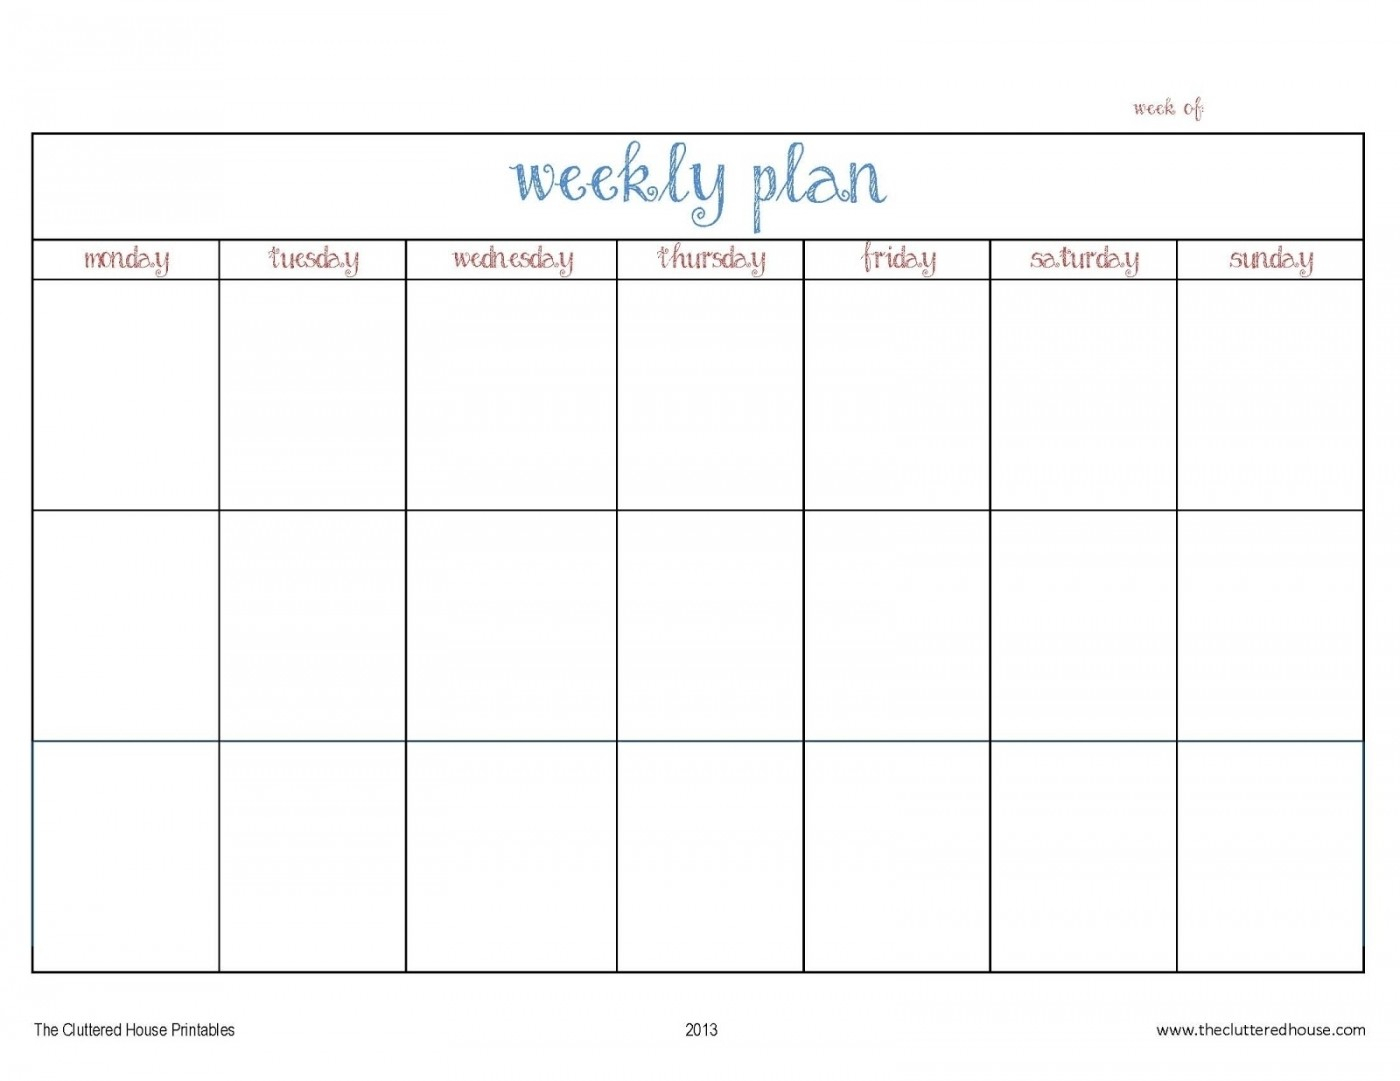 007 Week Calendar Tura Mansiondelrio Co Template Two Weeks throughout Two Week Printable Calendar